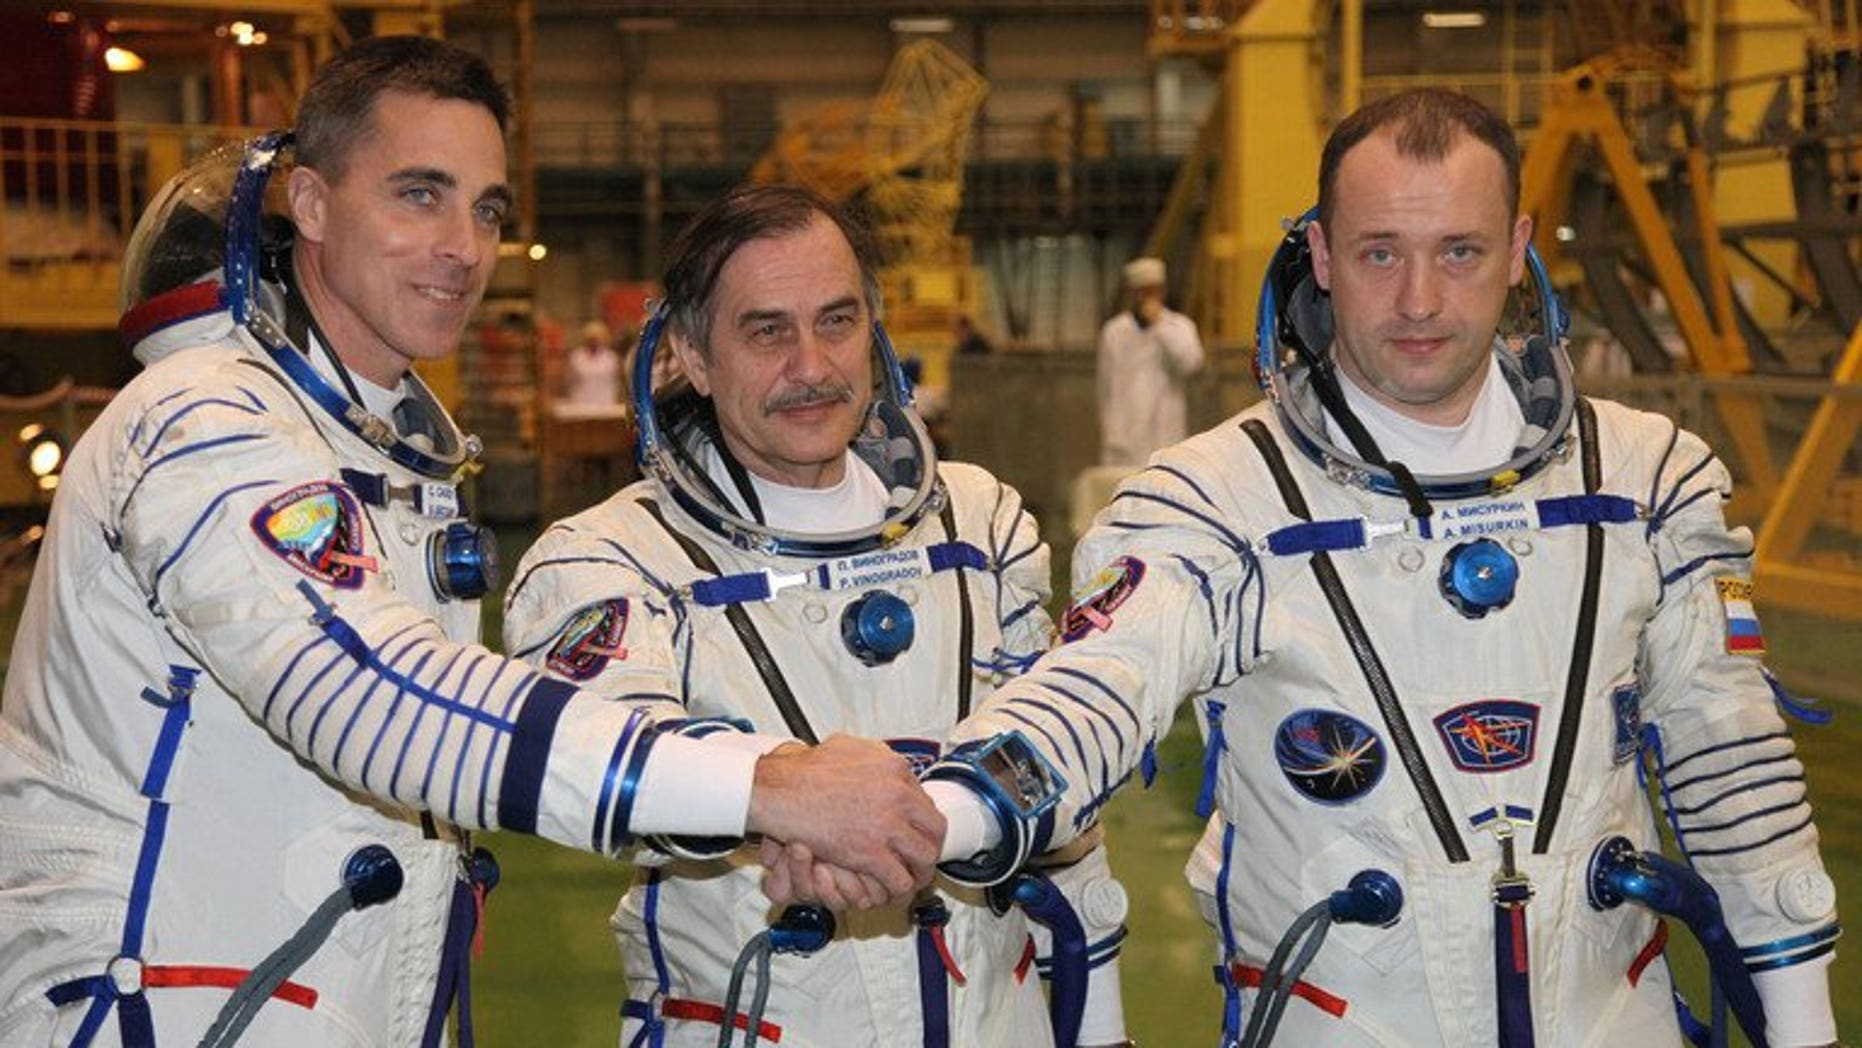 Russian cosmonauts, Pavel Vinogradov (C), Alexander Misurkin (R), and US astronaut Christopher Cassidy during training at Kazakhstan's Baikonur cosmodrome on March 17, 2013. The three returned to Earth Wednesday on board a Russian Soyuz capsule after a half-year mission on the International Space Station (ISS), landing in Kazakhstan, mission control in Moscow announced.